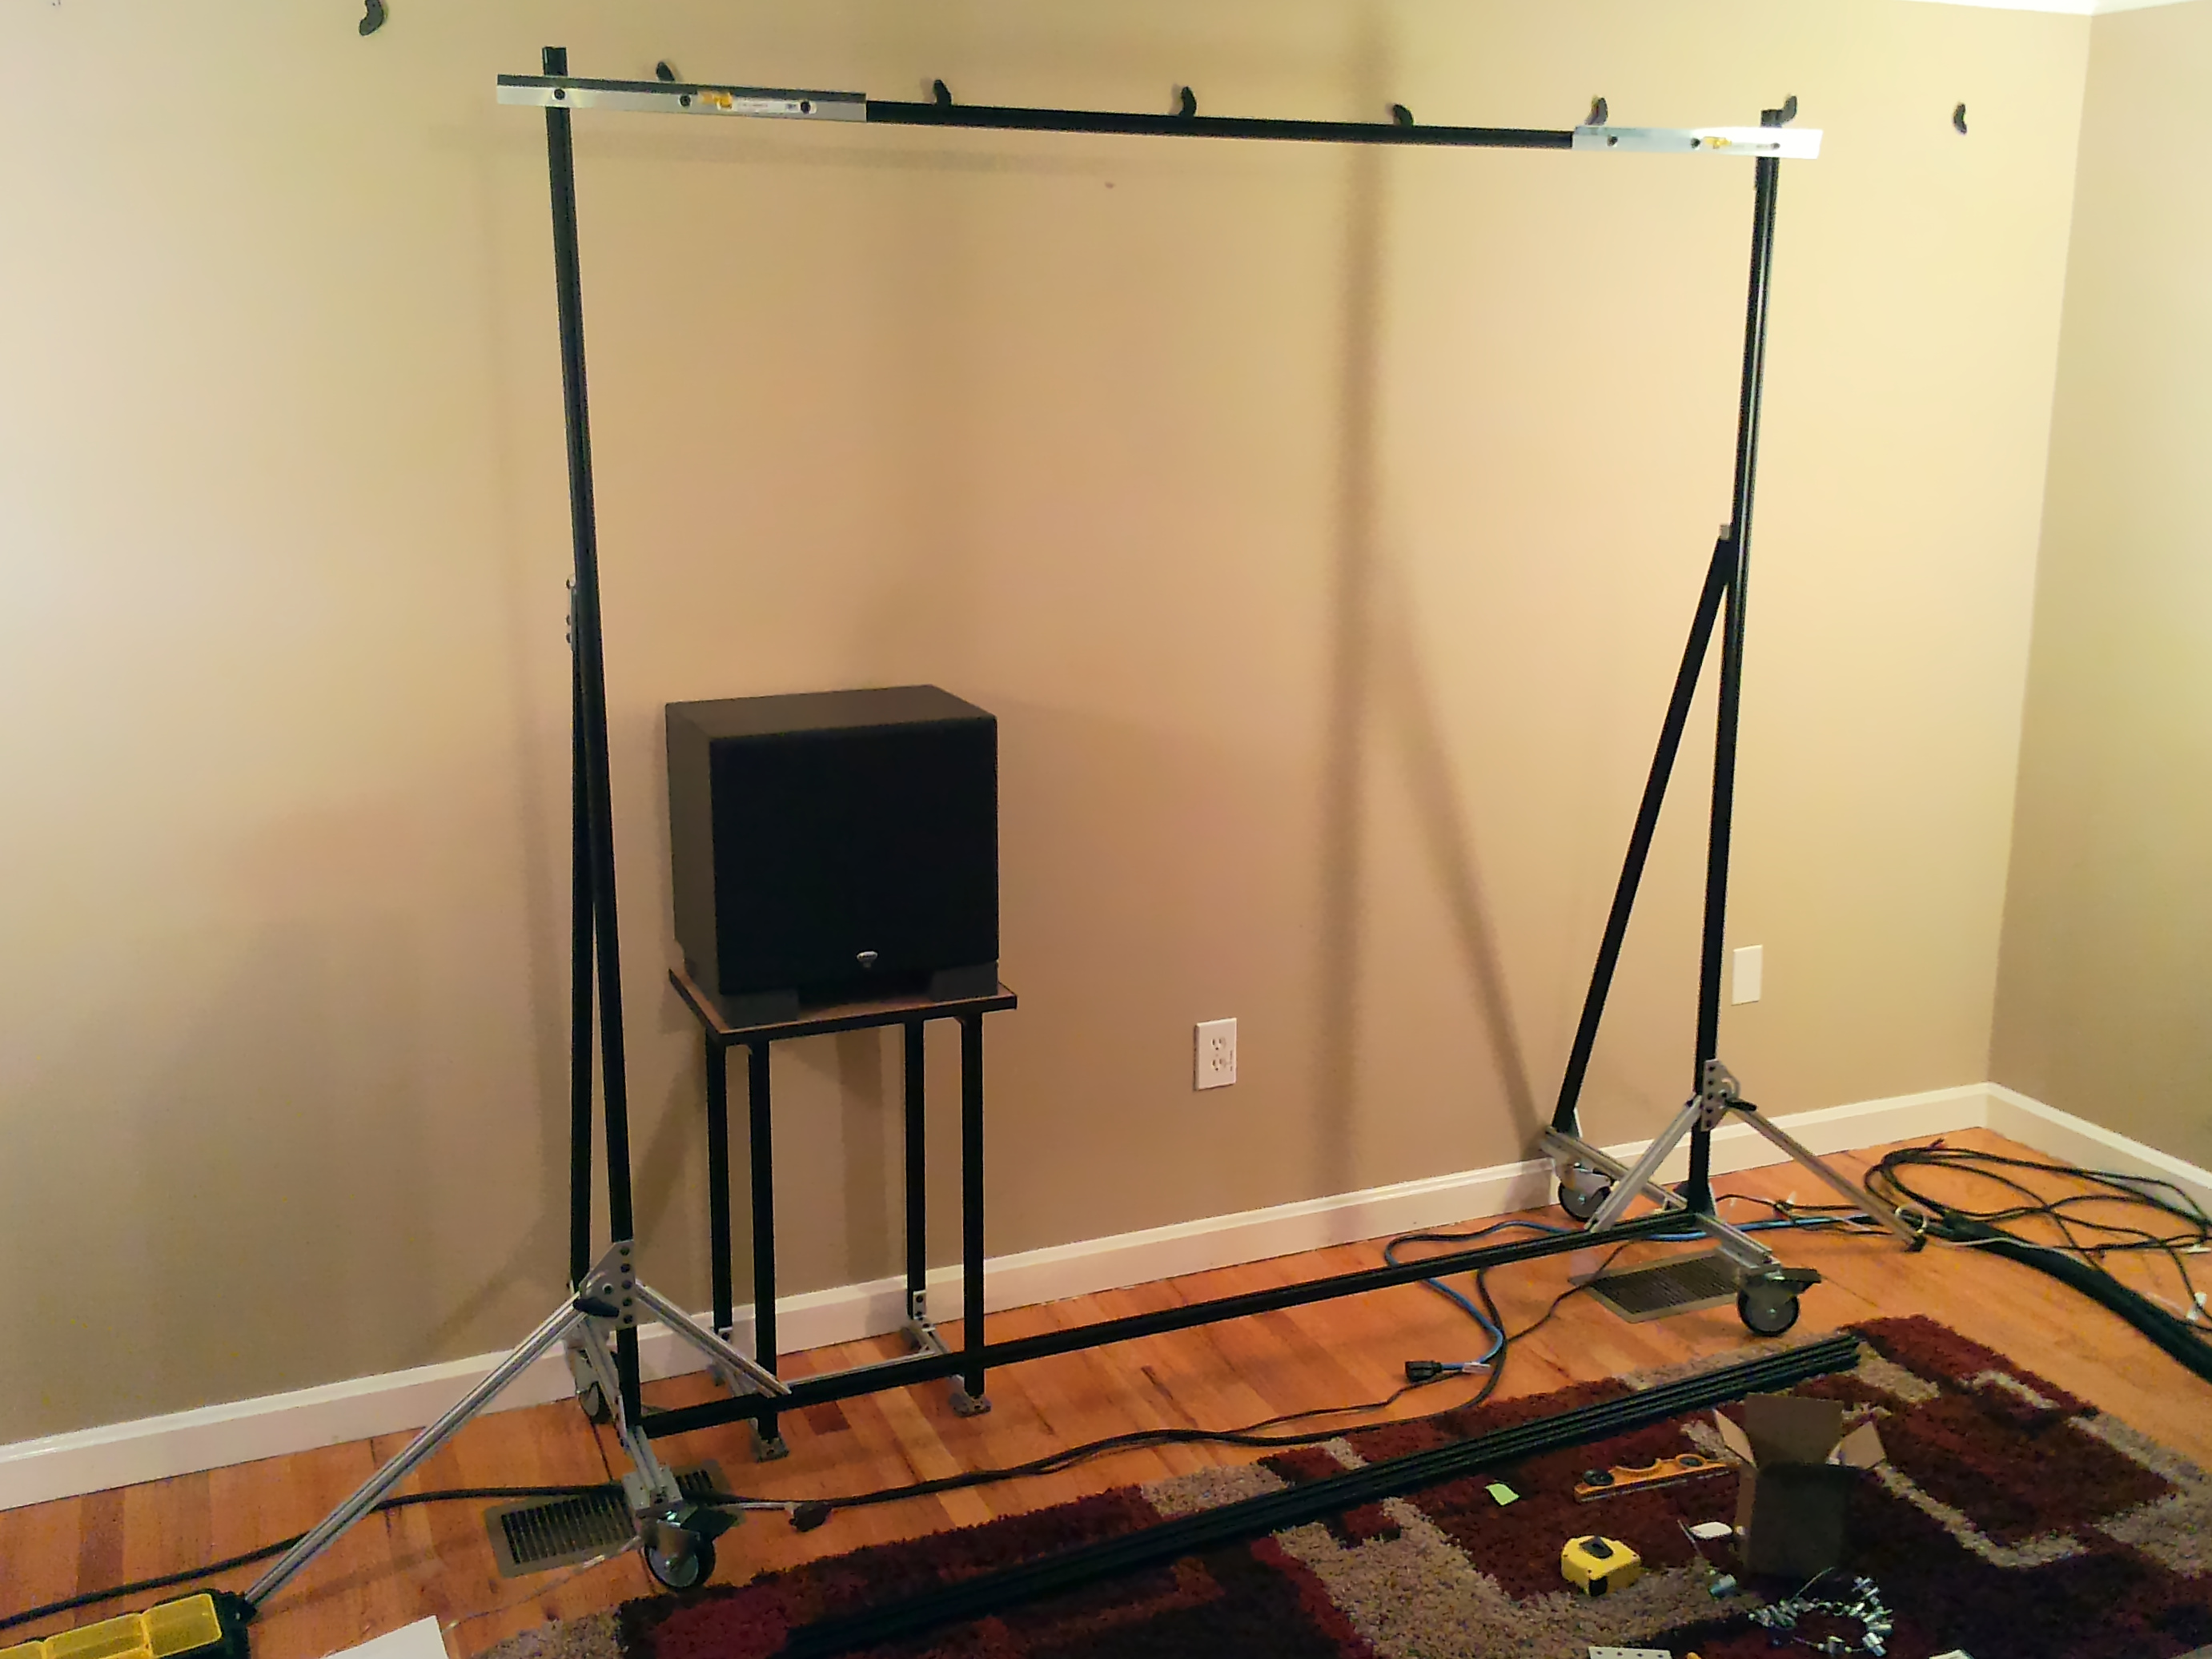 20131204-screen-stand-assembled-front.jpg